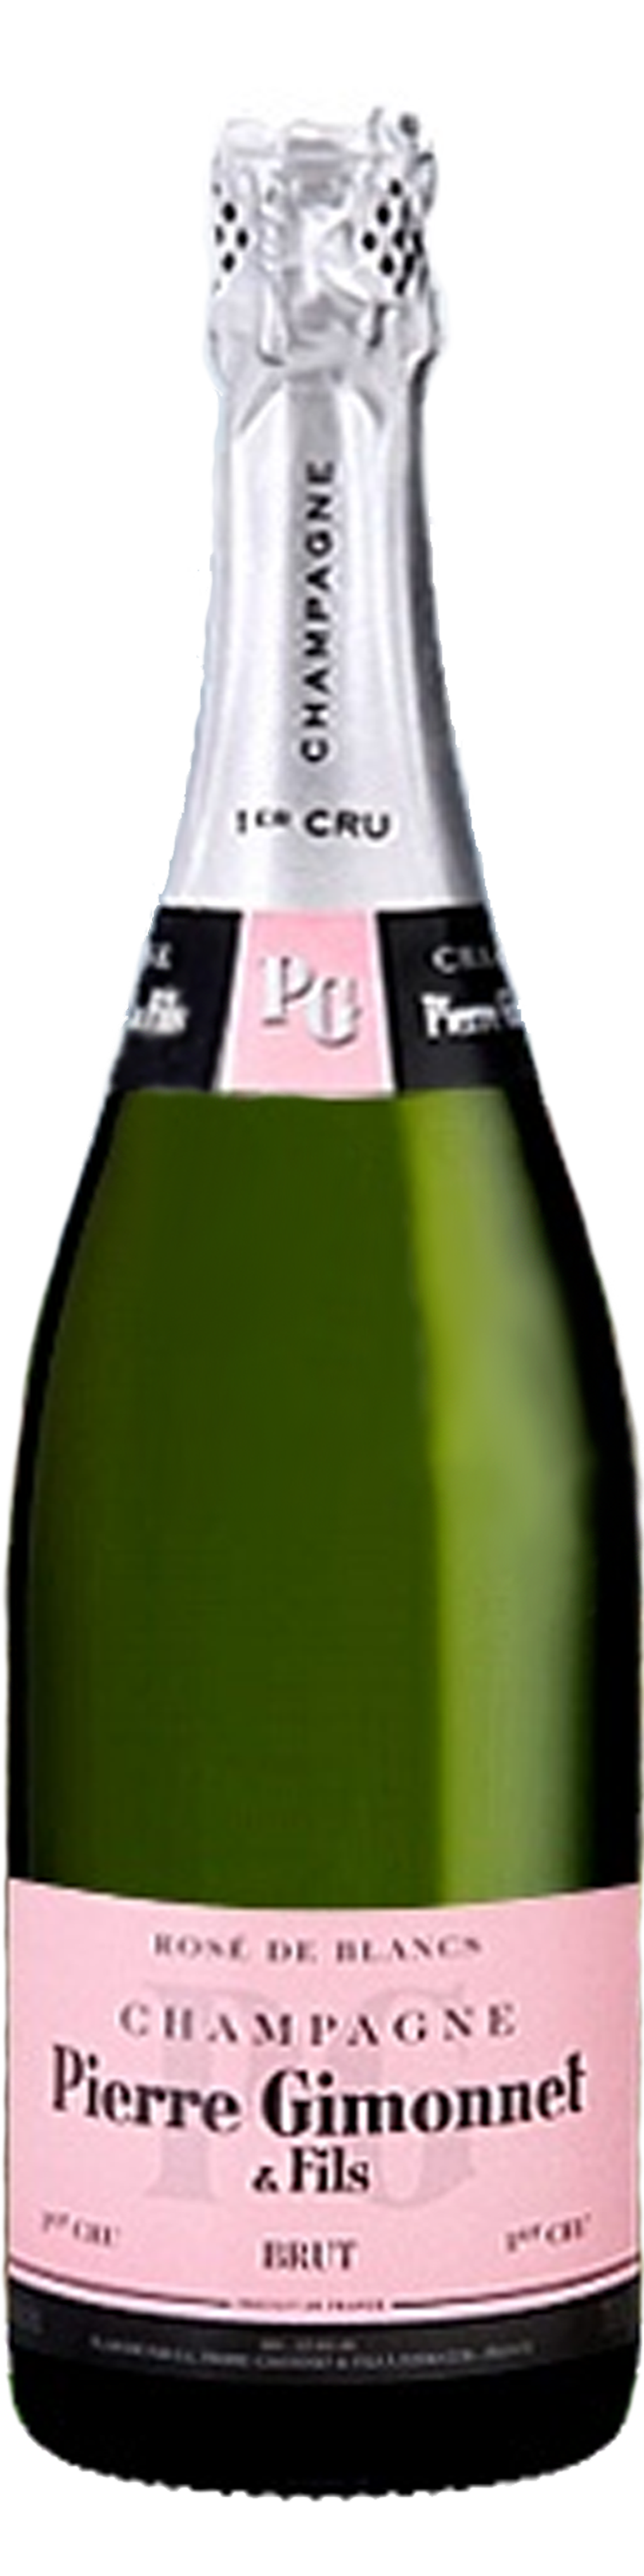 Image of product Rosé de Blancs